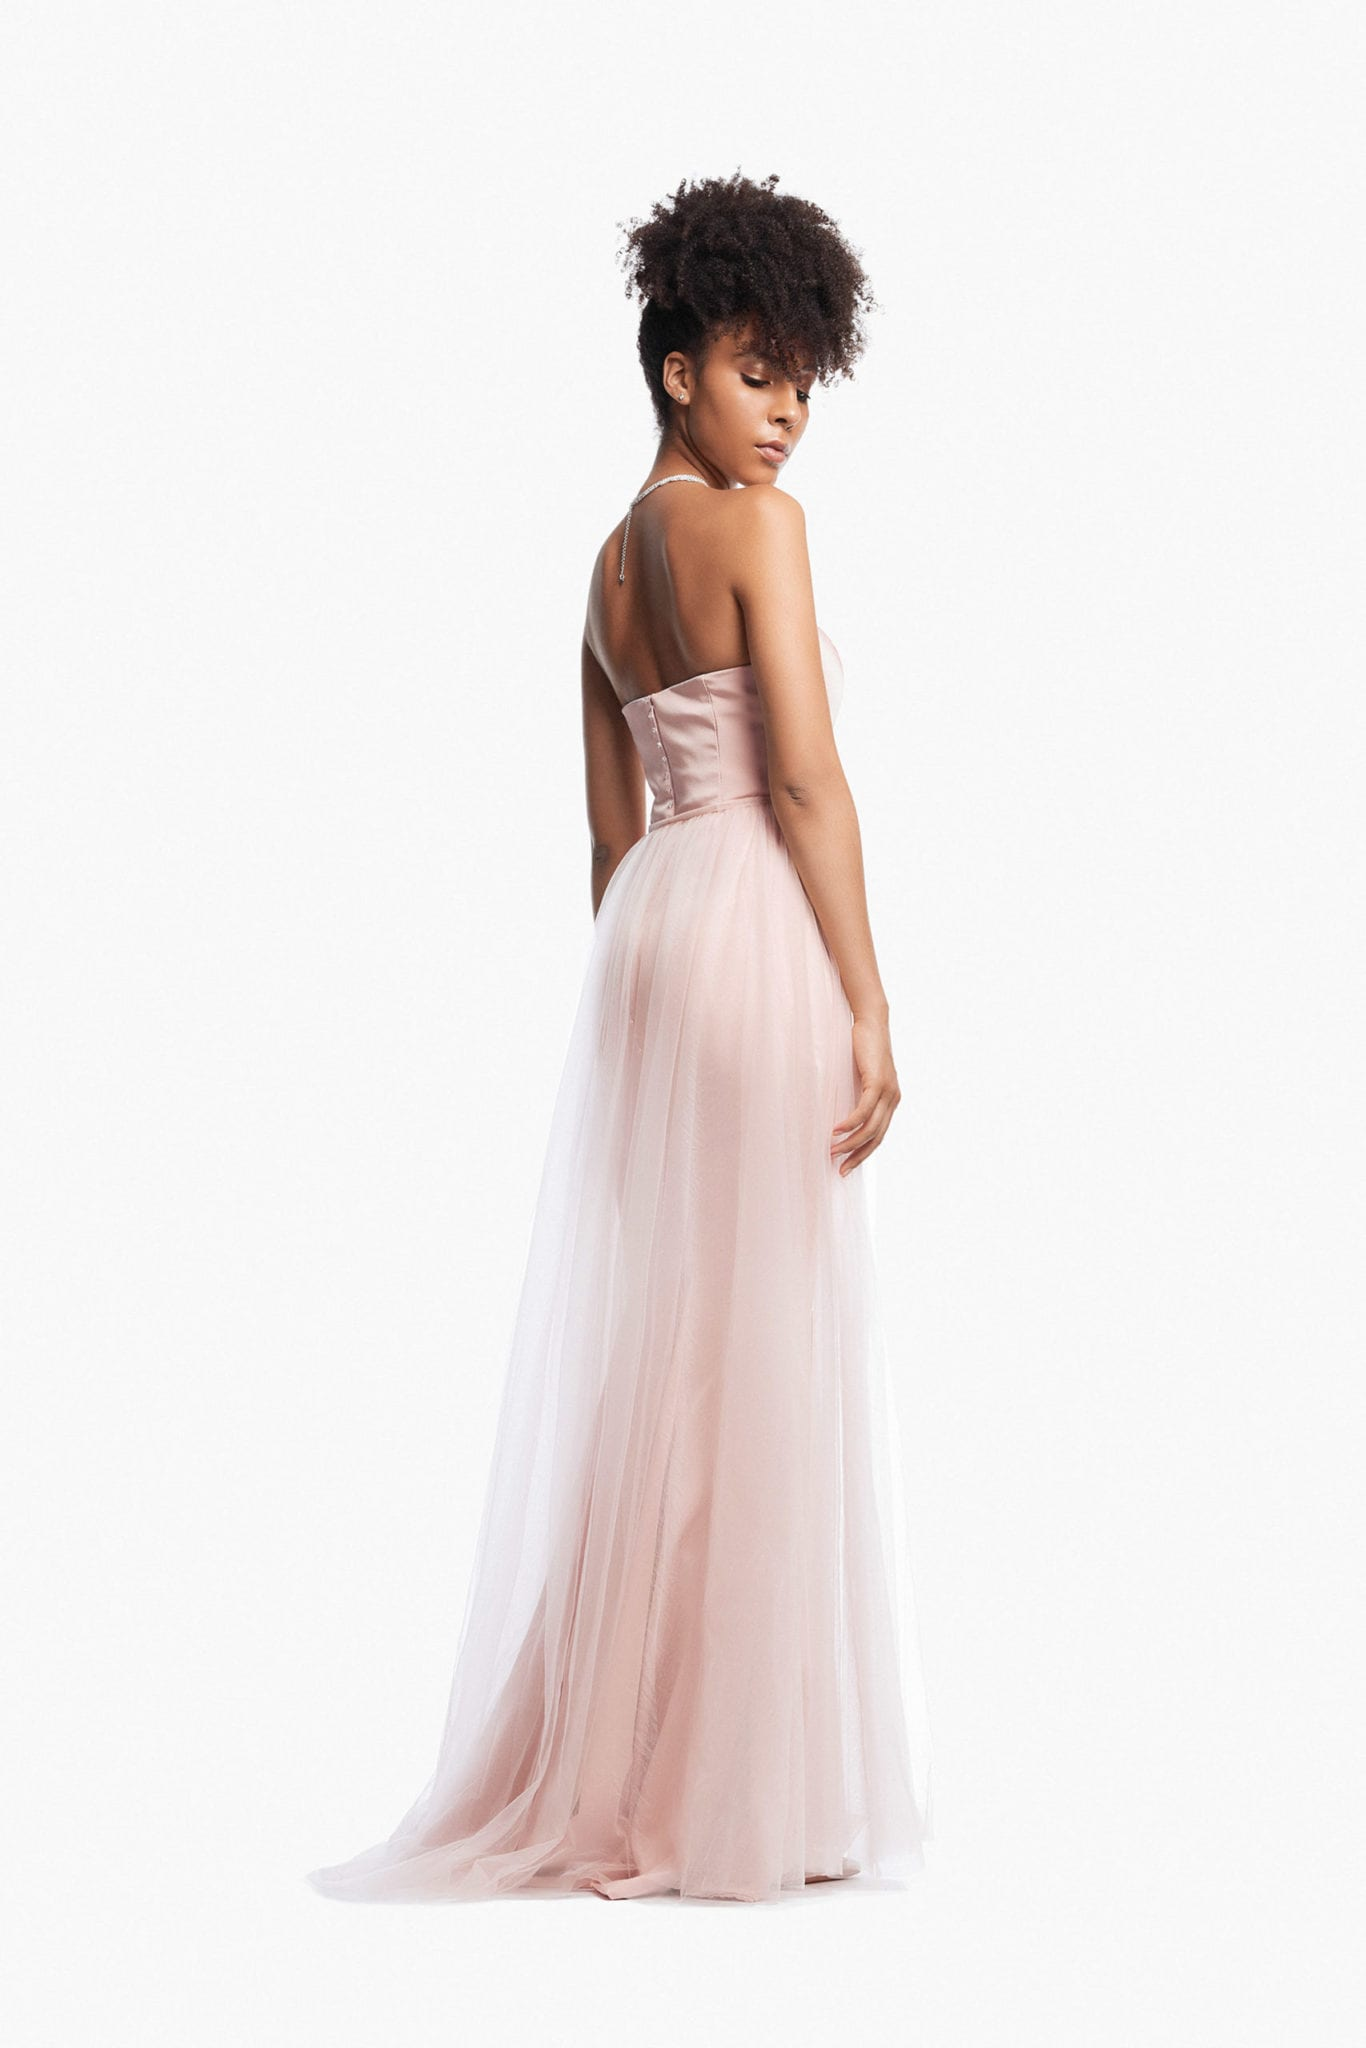 Flossy Strapless with Tulle Overskirt